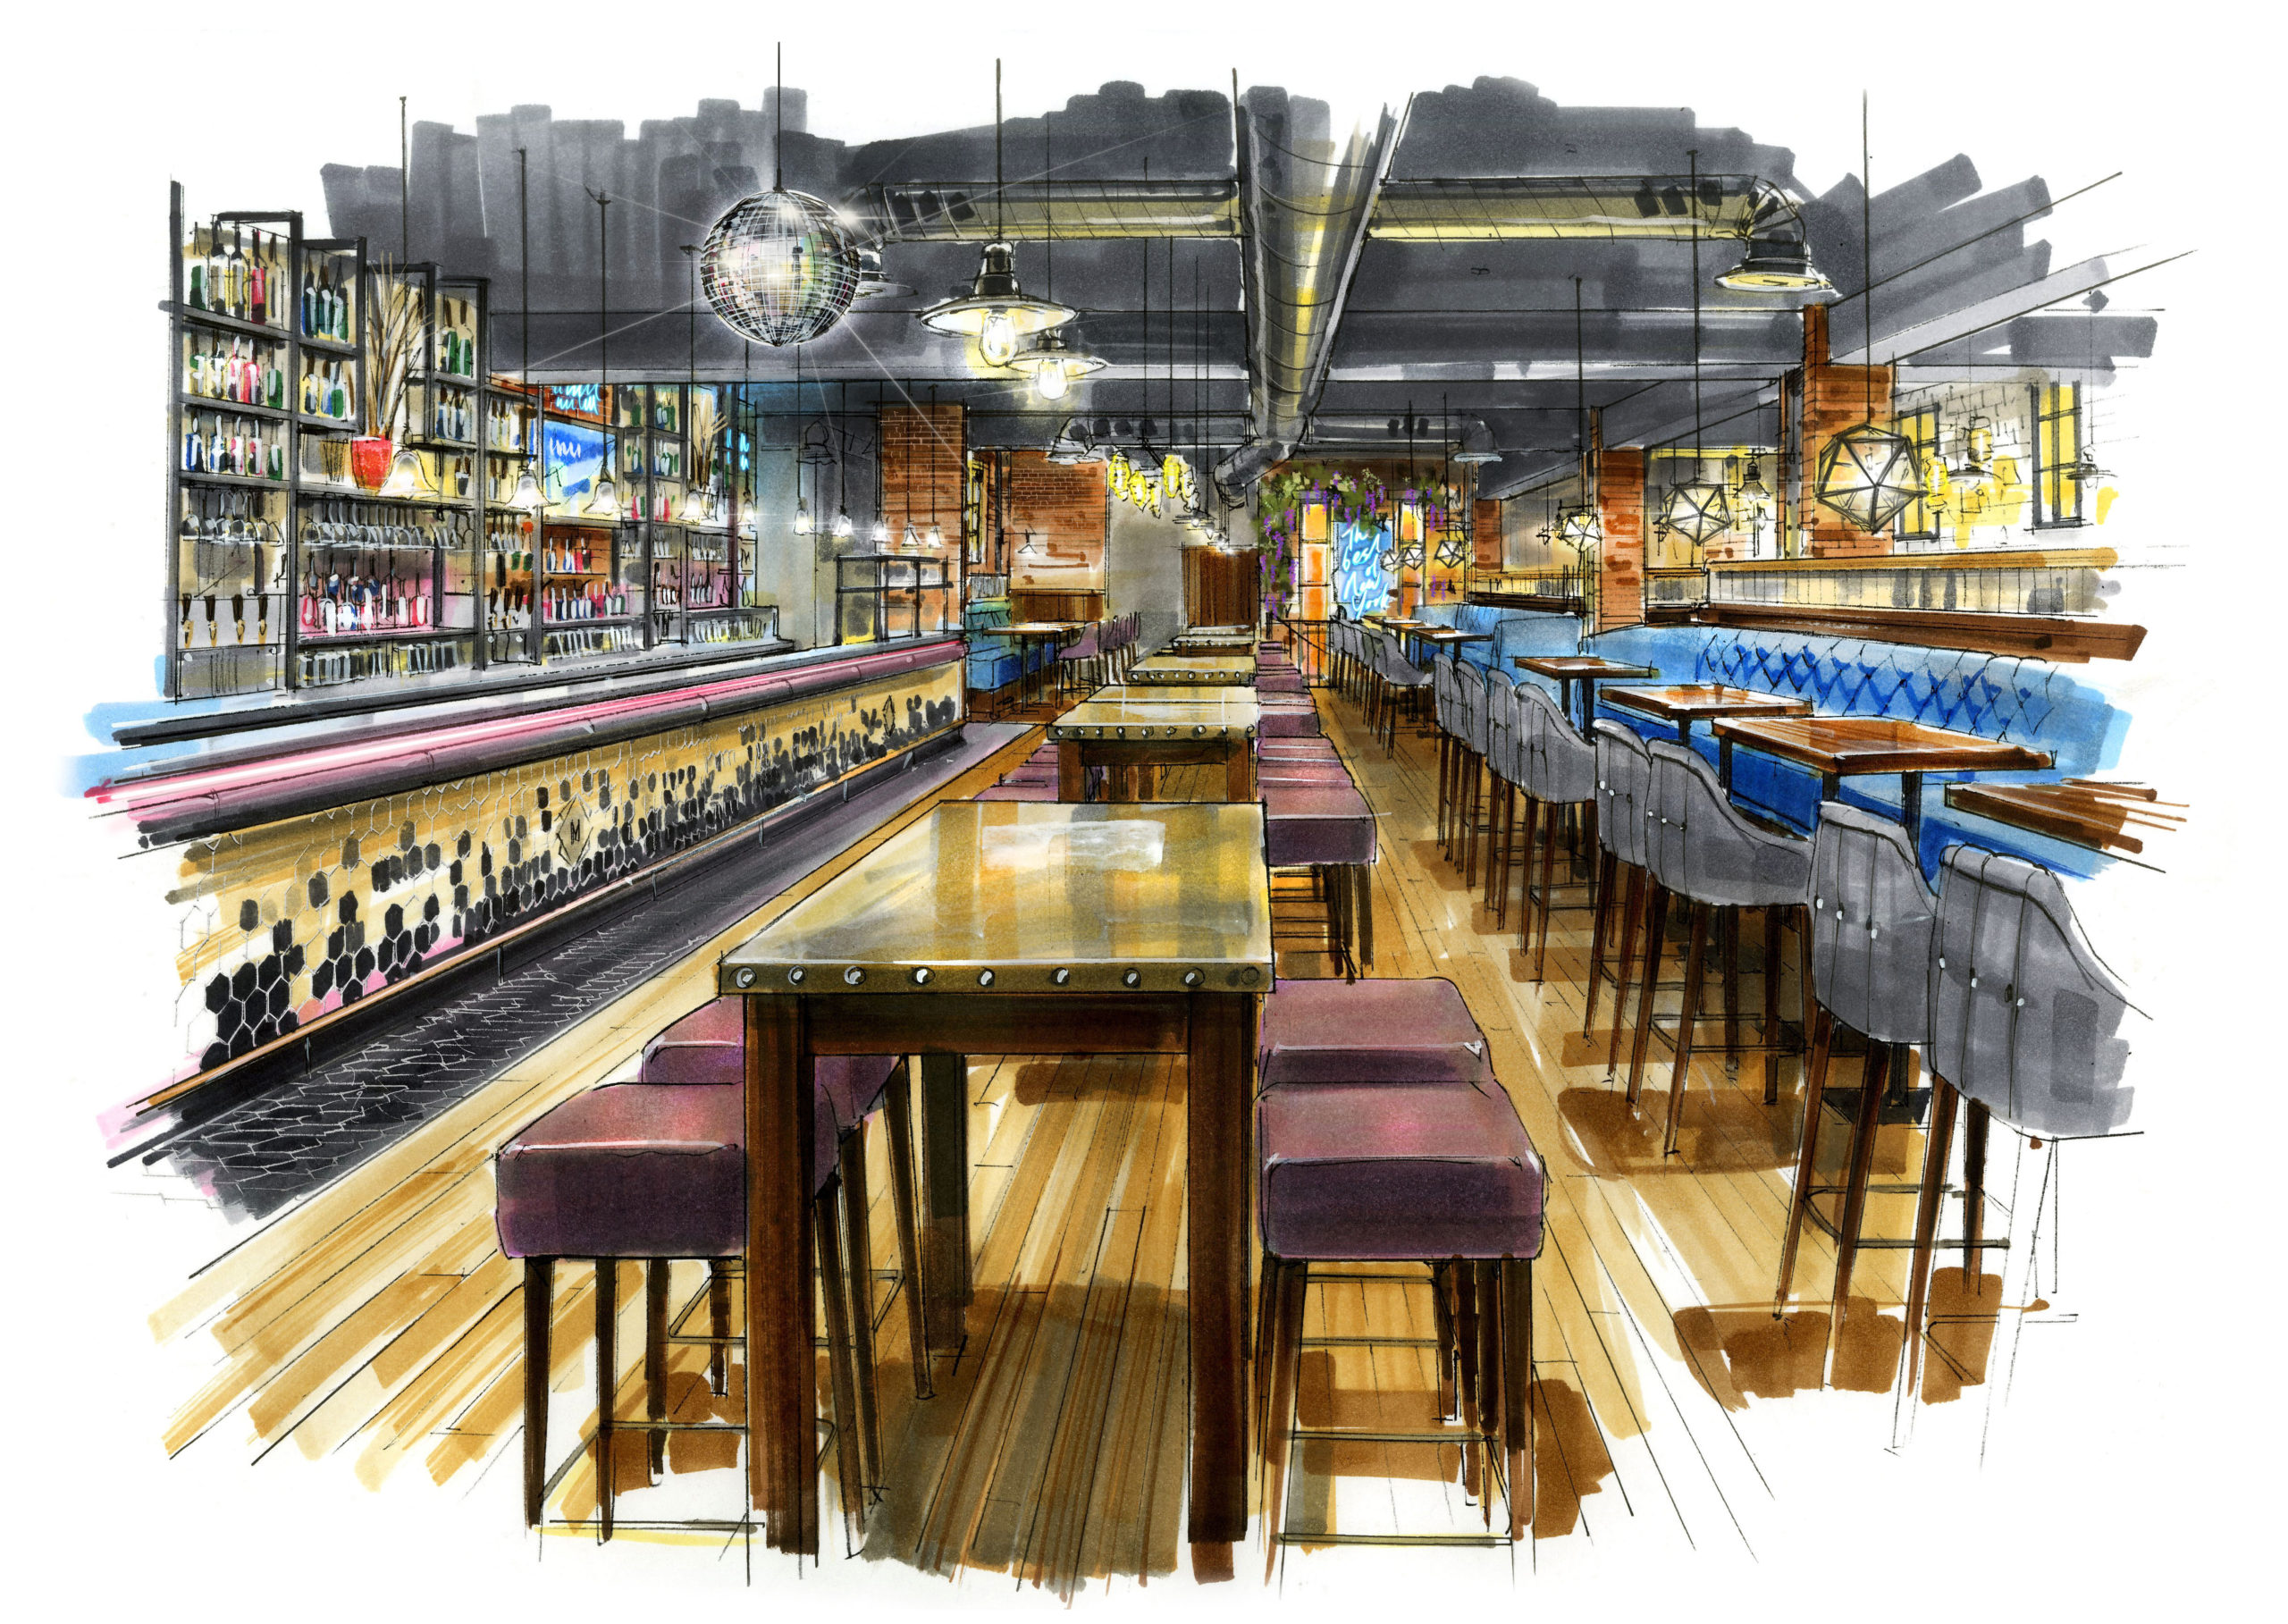 15 New Openings To Get Excited About in Birmingham